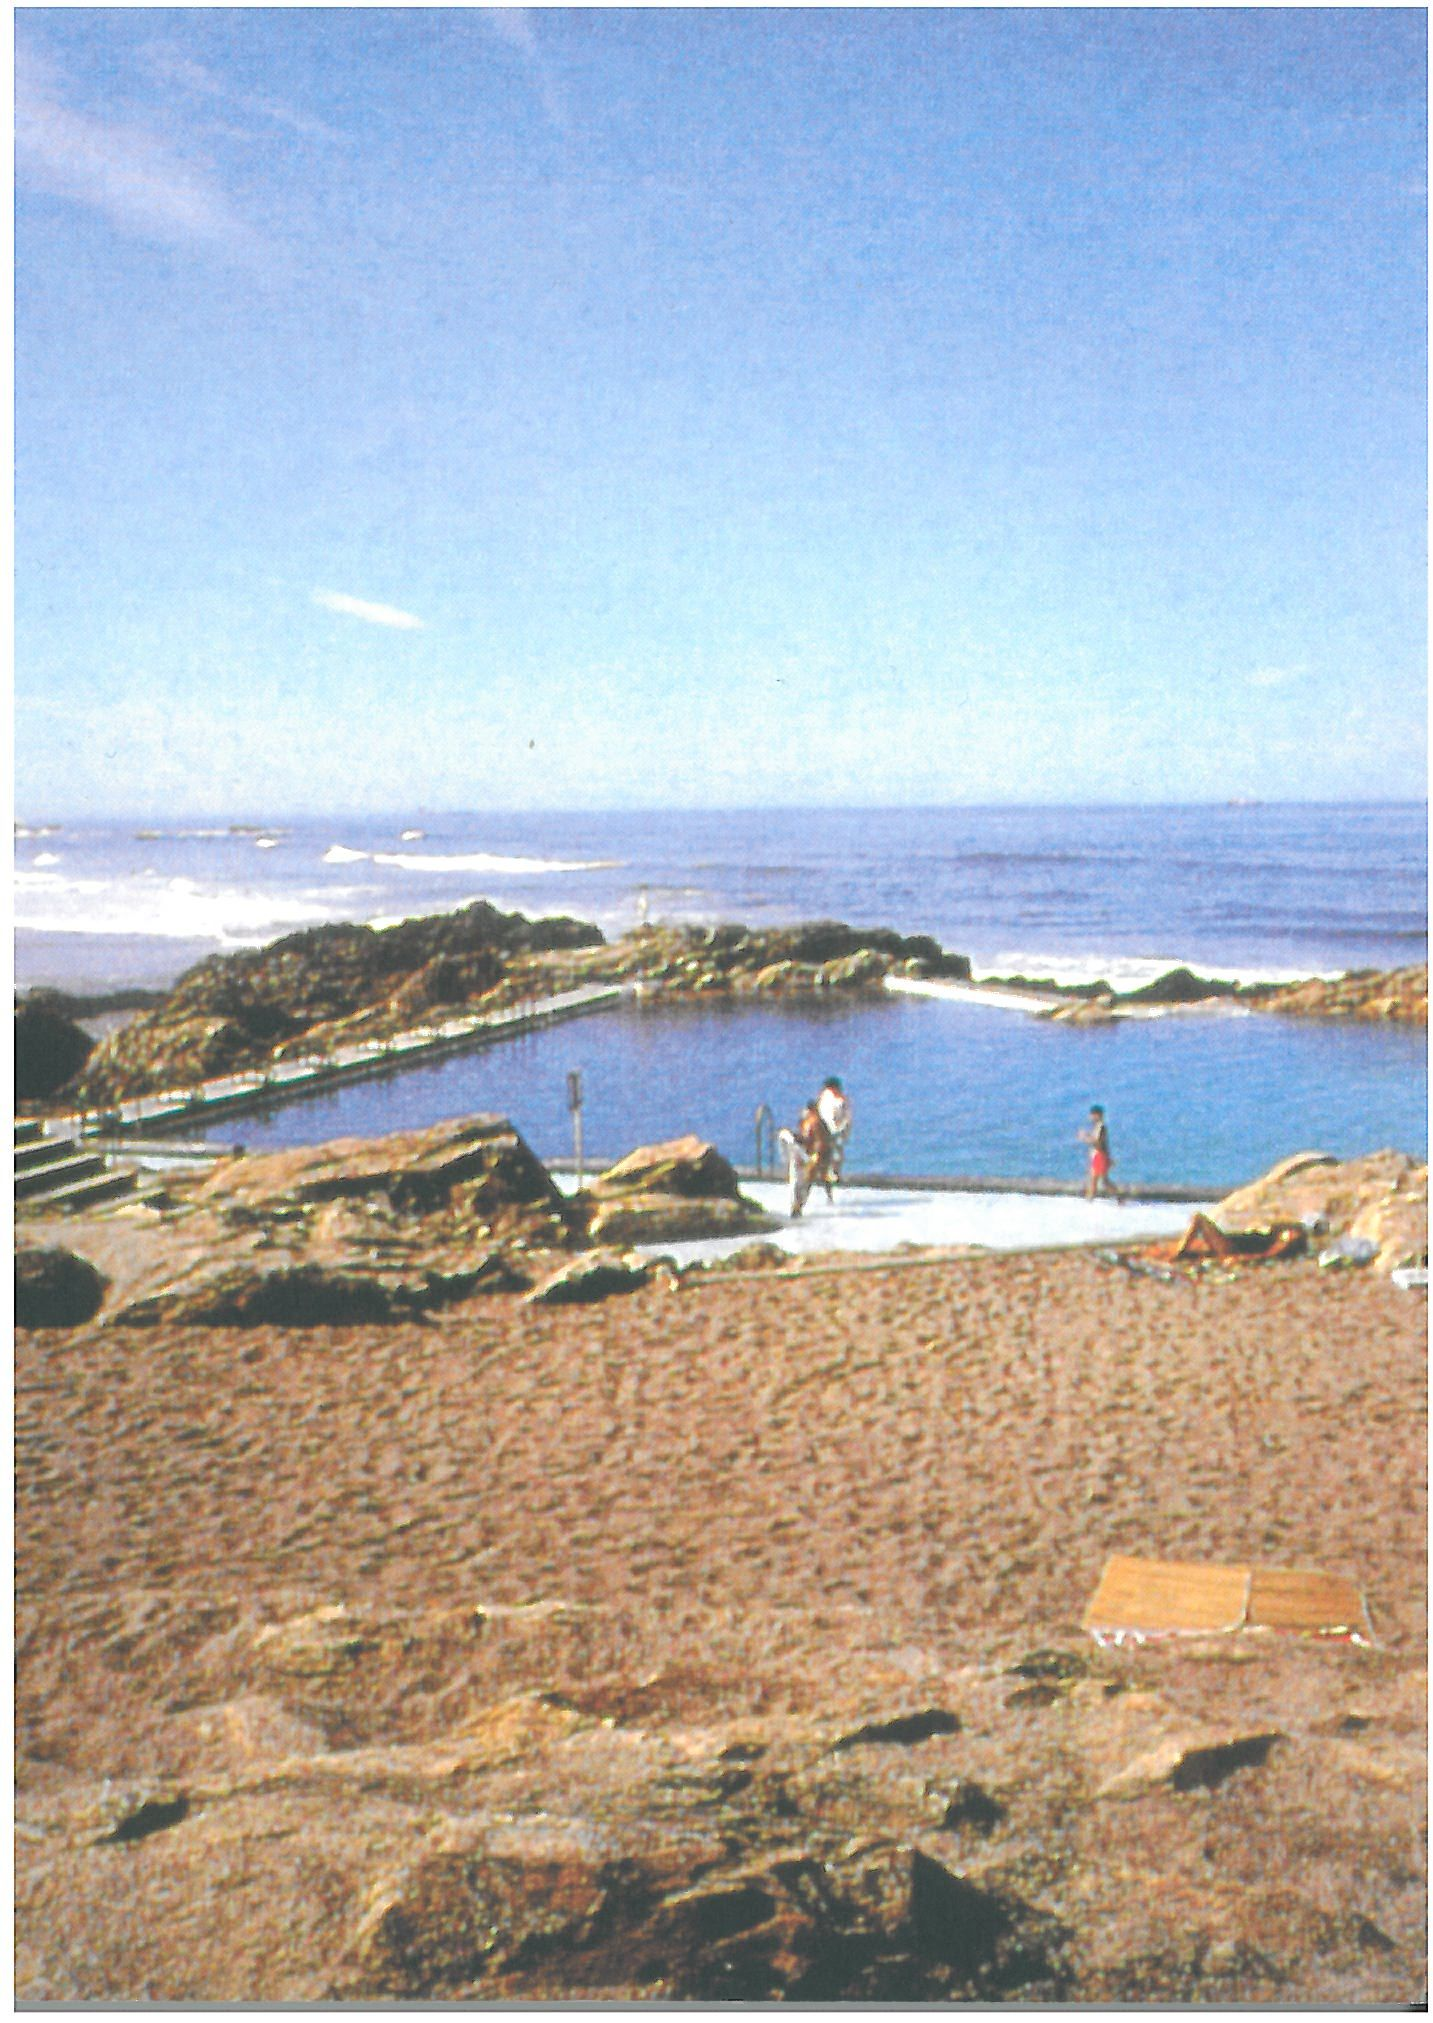 Post image for Piscina na Praia de Leça-A Pool on the Beach